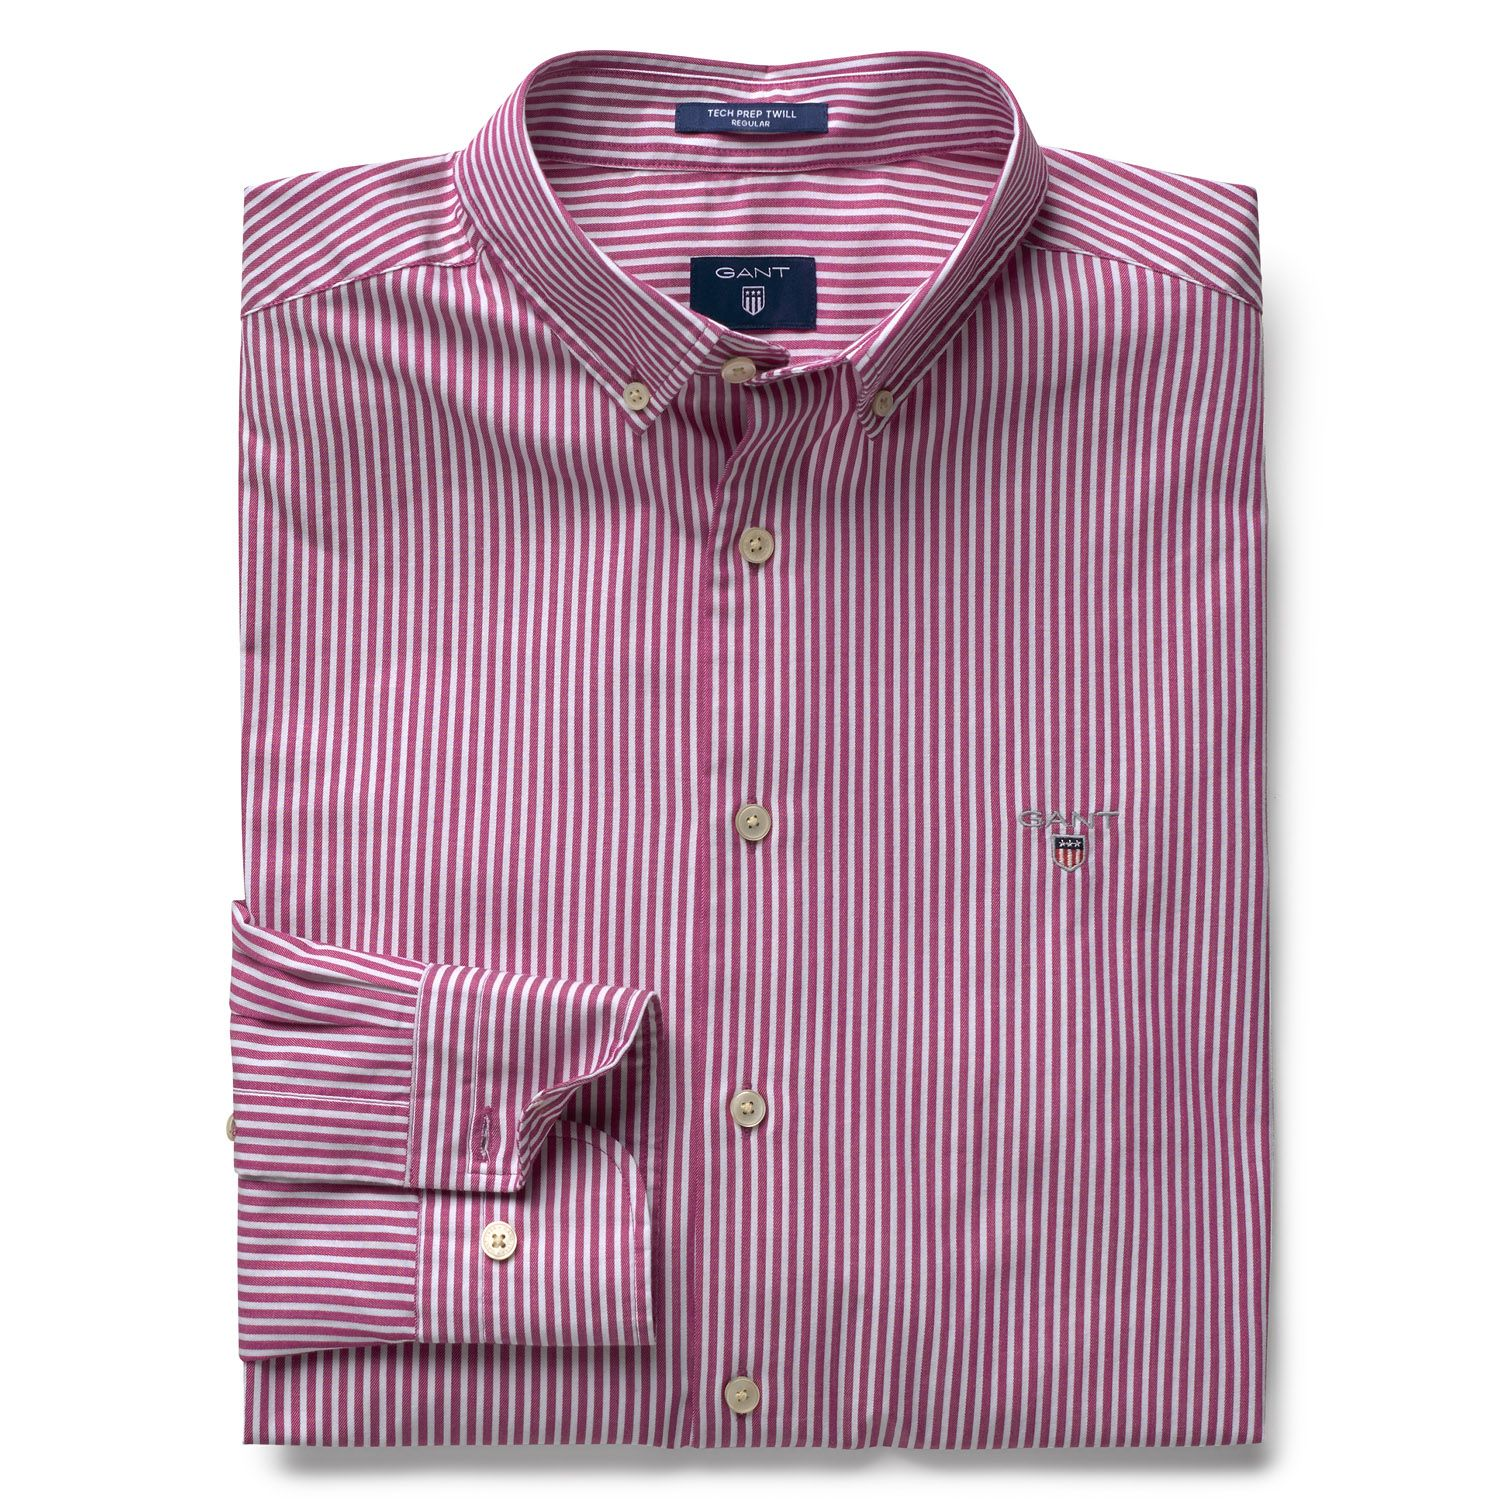 GANT Raspberry Purple Tech Prep™ Regular Fit Twill Stripe Shirt